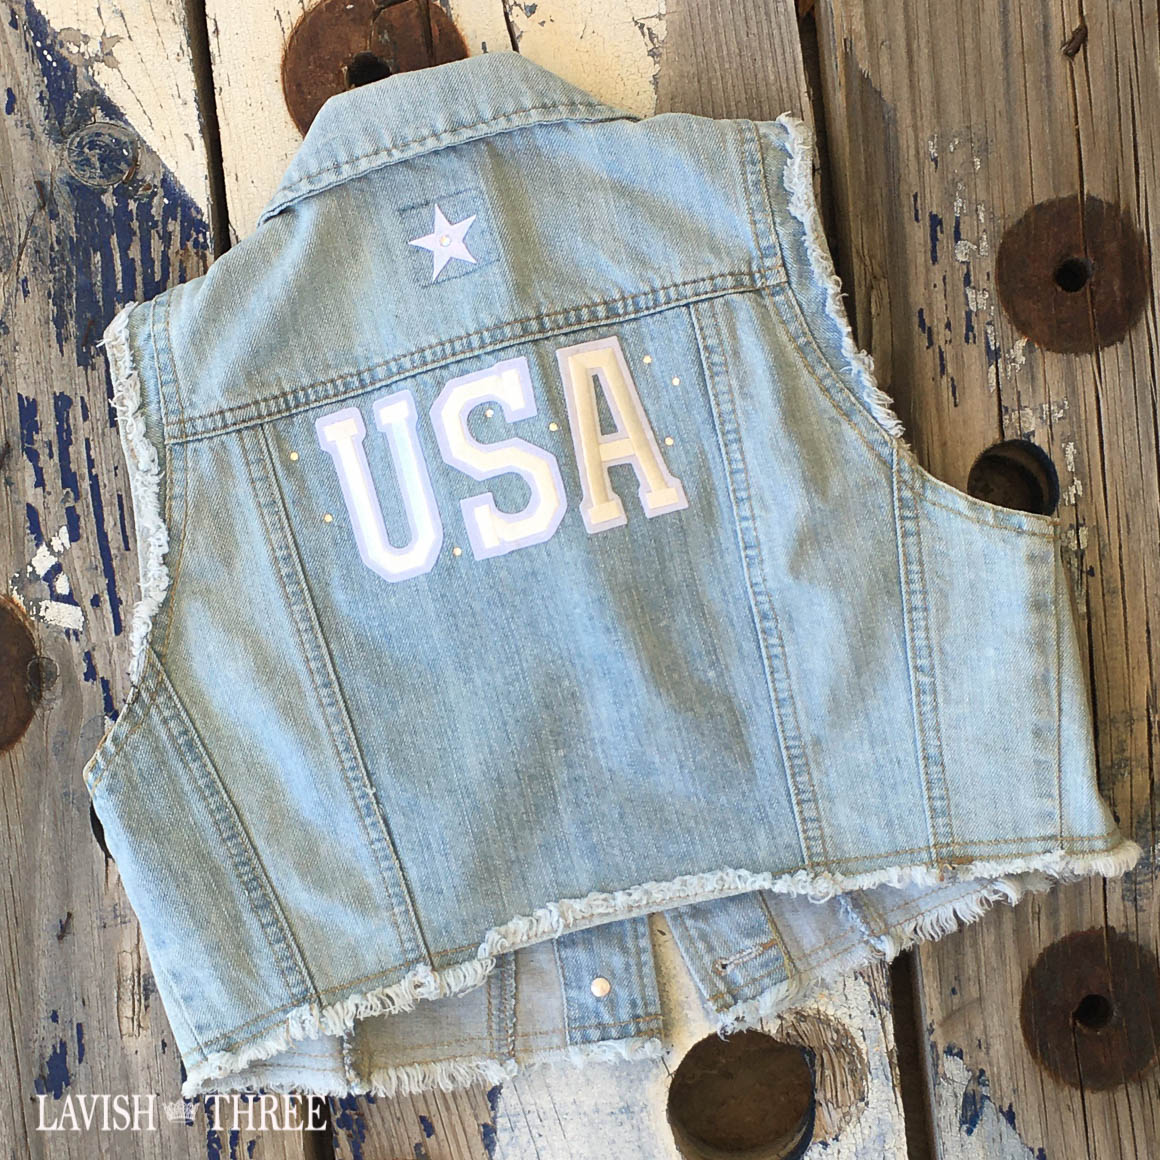 Denim vest jacket USA light lavish three 3